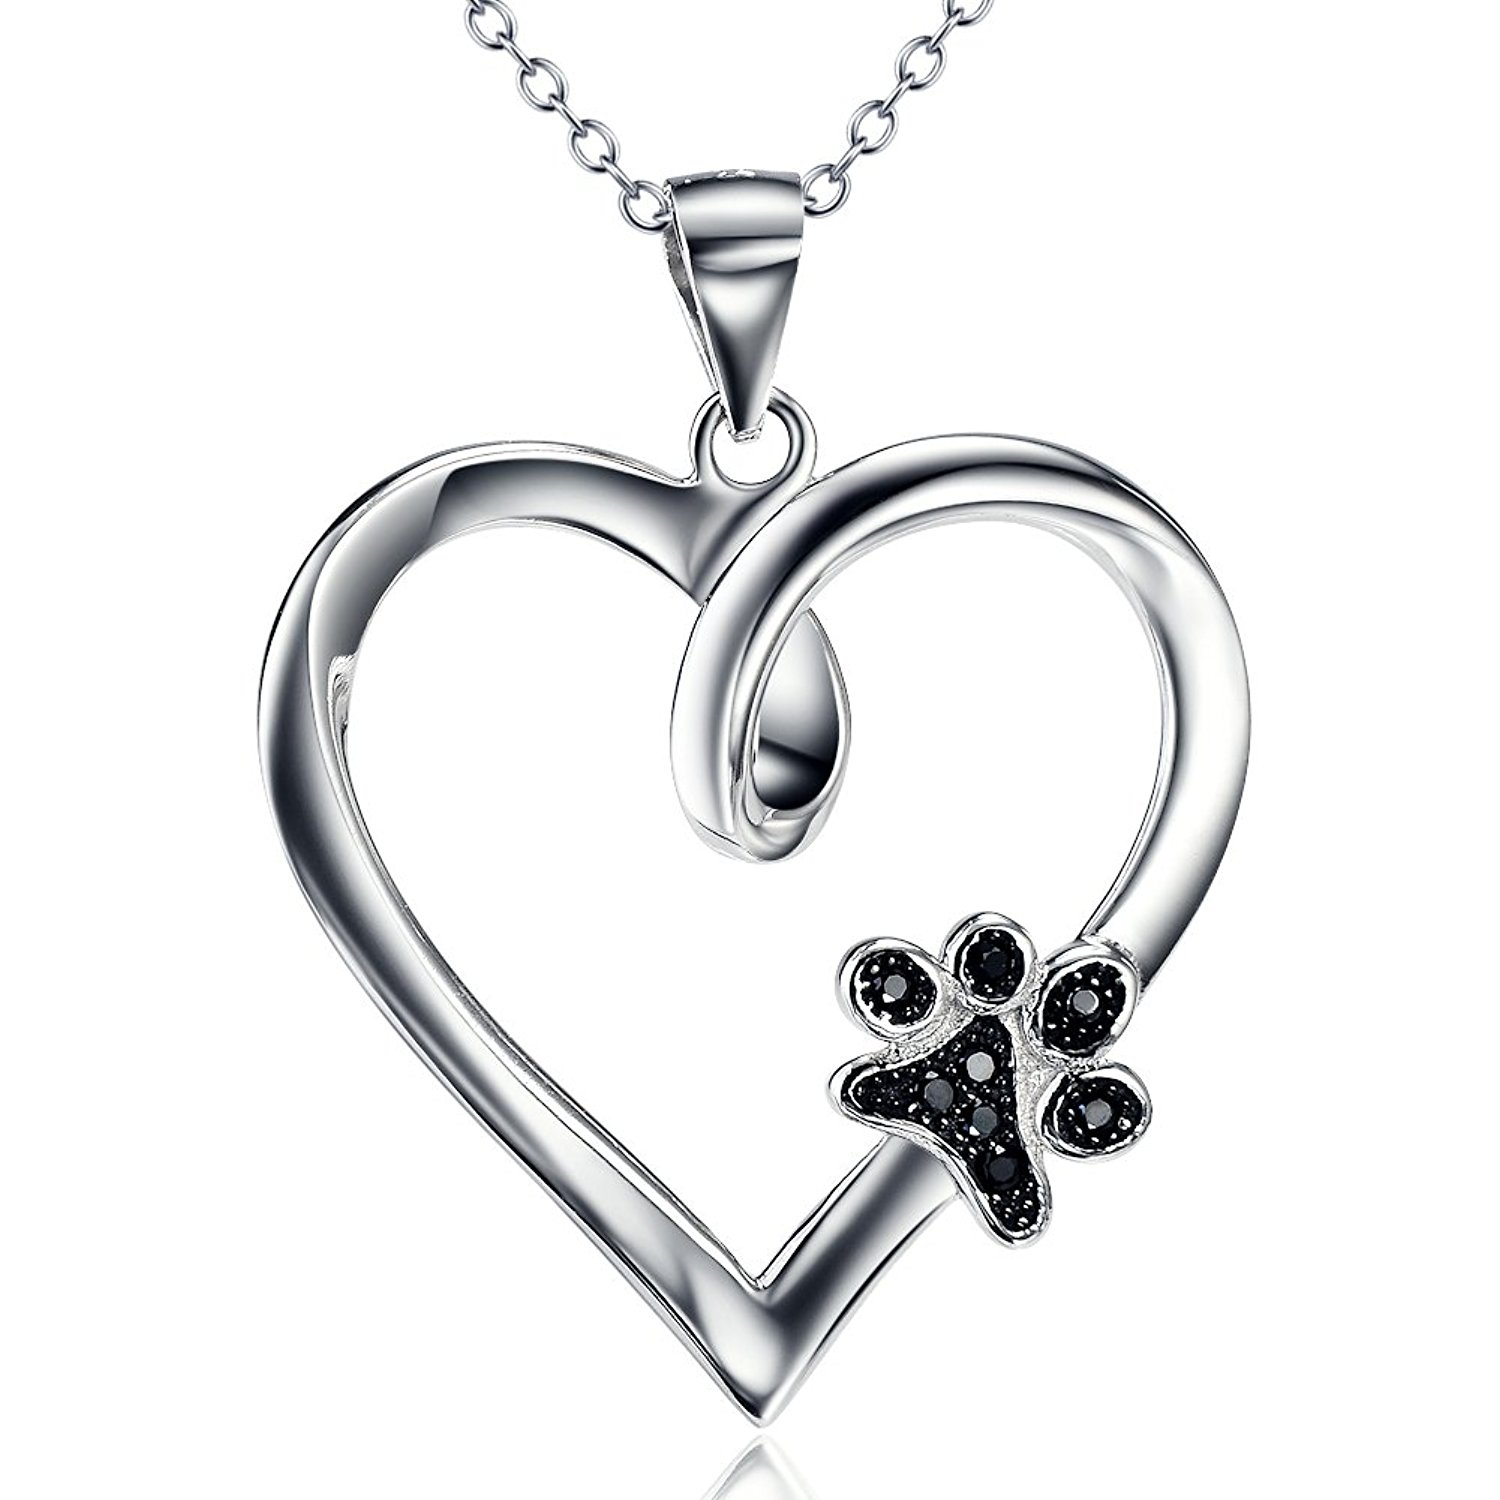 7f3910c15 YFN Sterling Silver Paw Print Love Heart Pendant Necklace Dog Memorial  Gifts for Dog Mom Dog Lover (Heart and Paw Print)